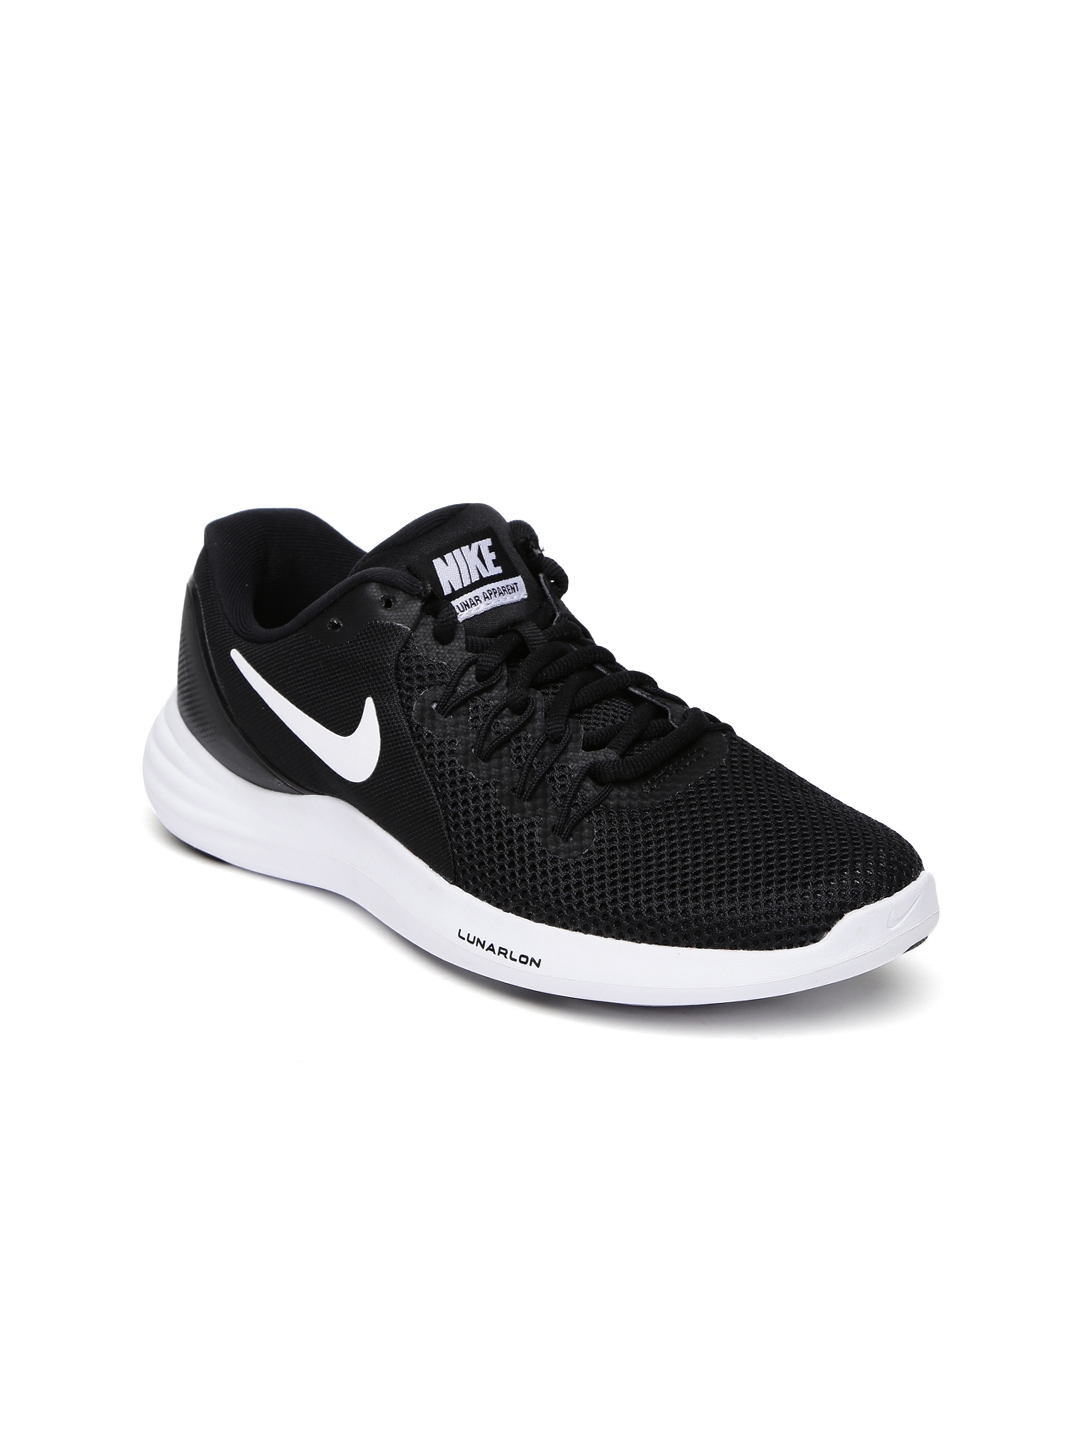 Buy Nike Women Black Lunar Apparent Running Shoes - Sports Shoes for ... 83cd7692a